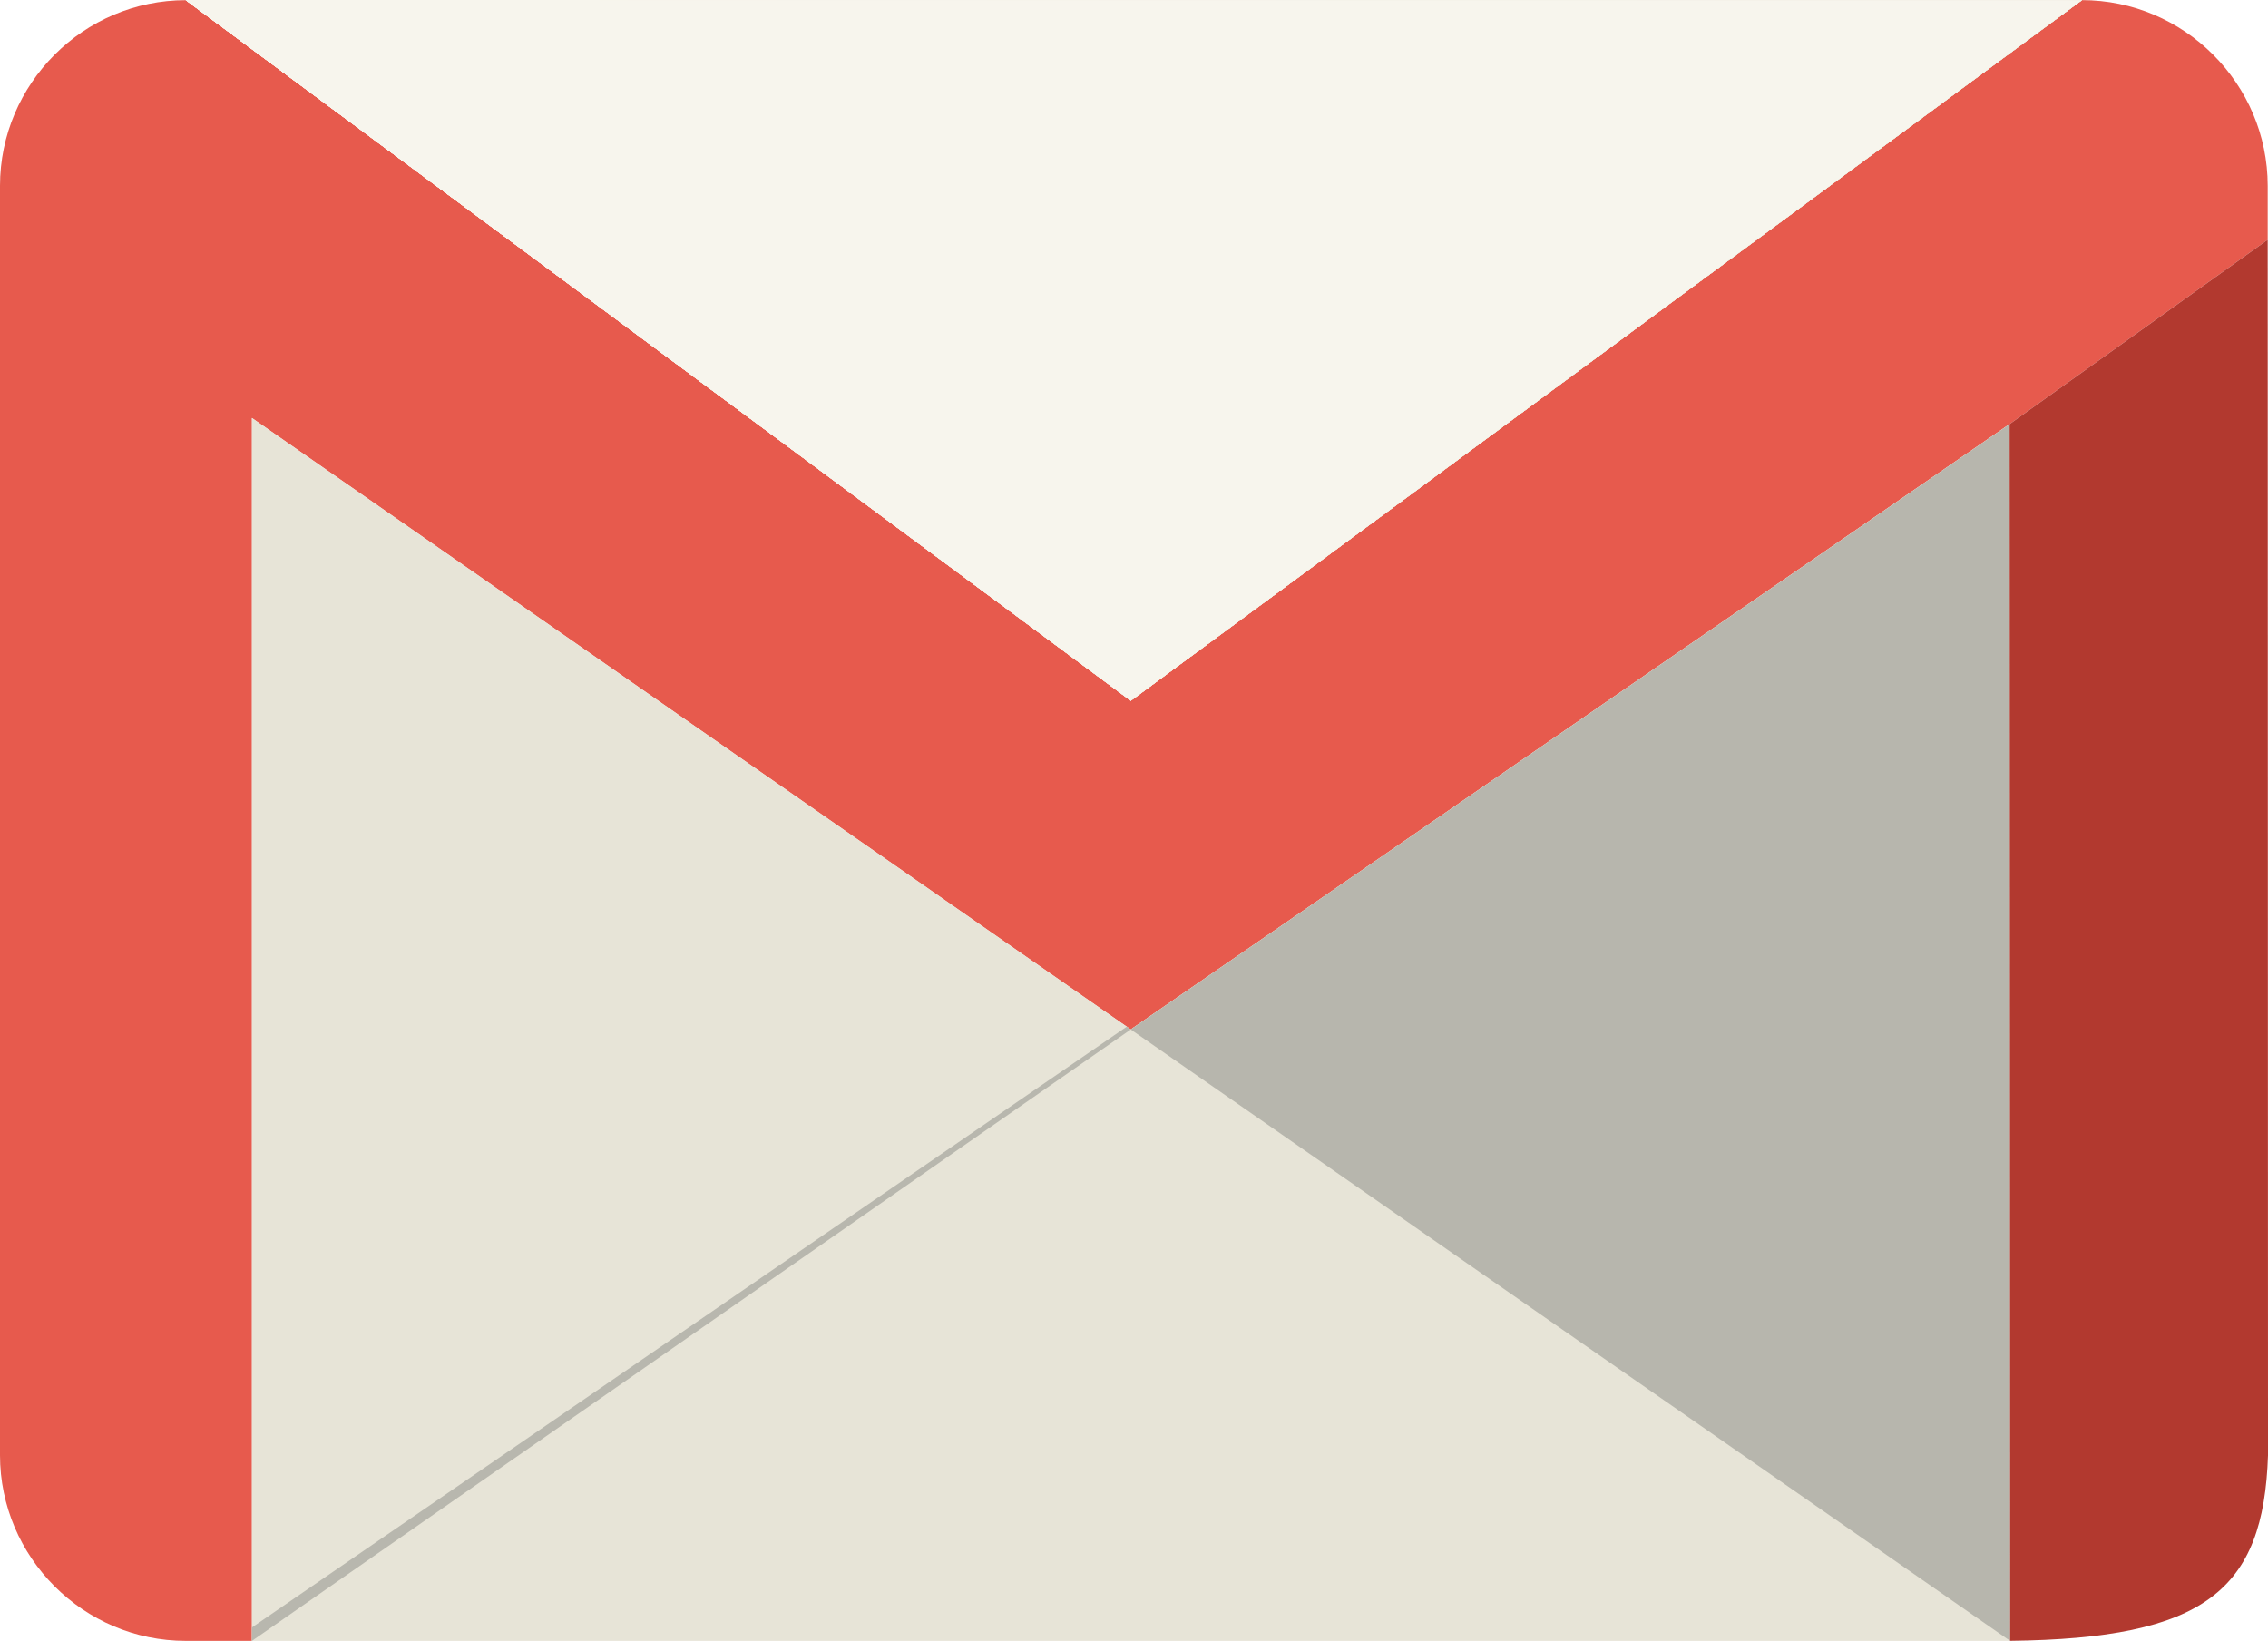 gmail icon clipart vector high resolution